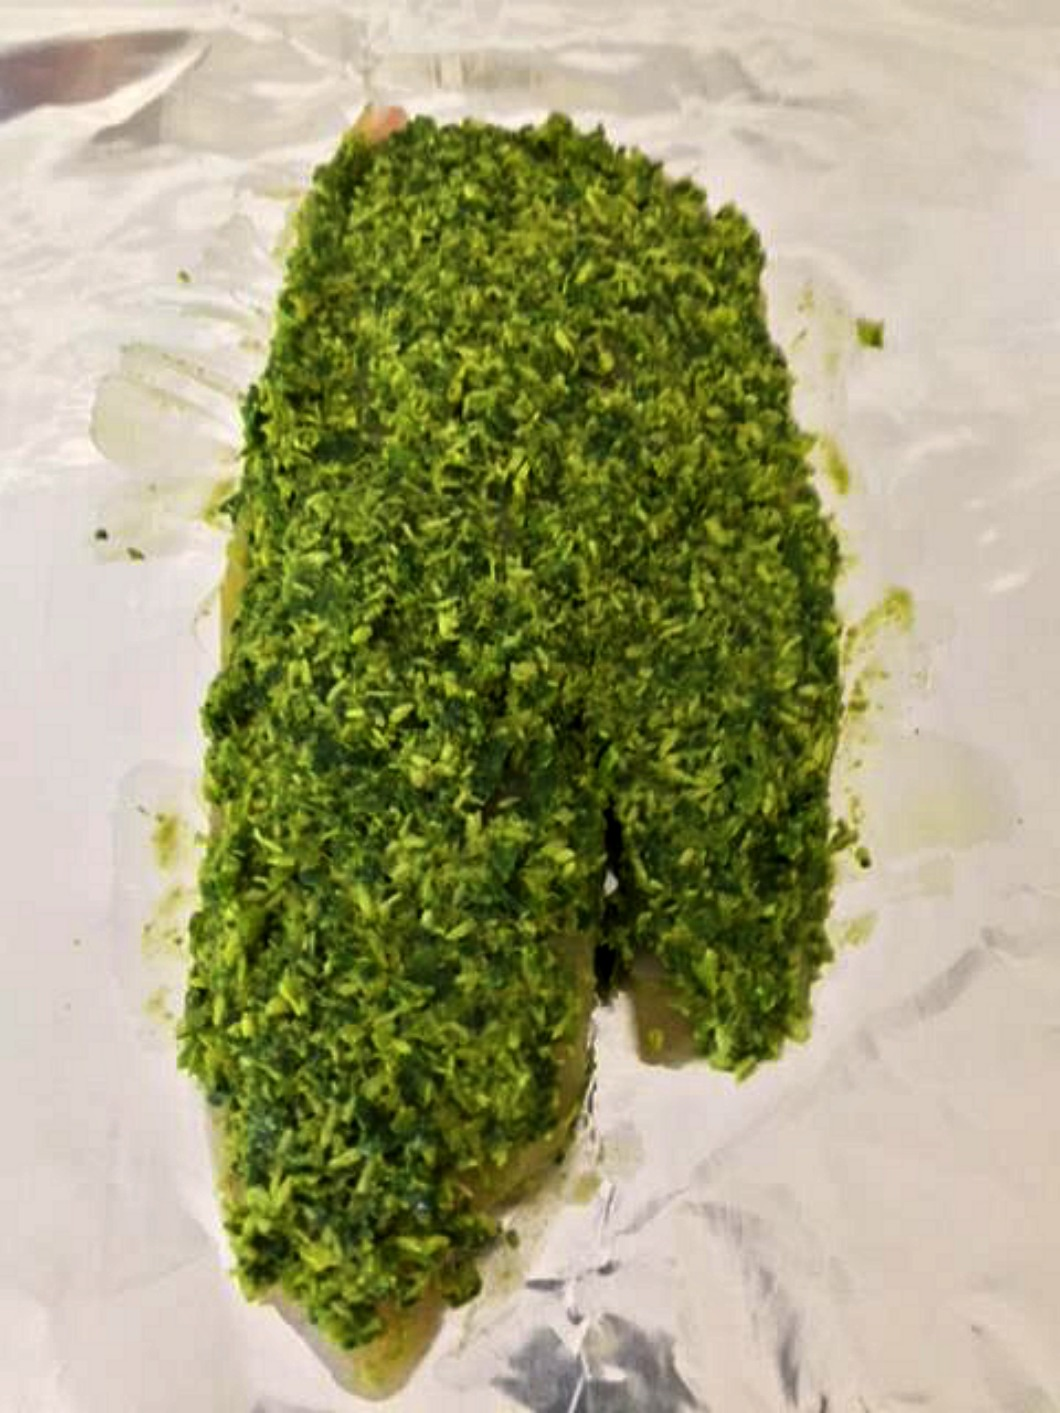 fresh pureed chutney encrusted on raw tilapia